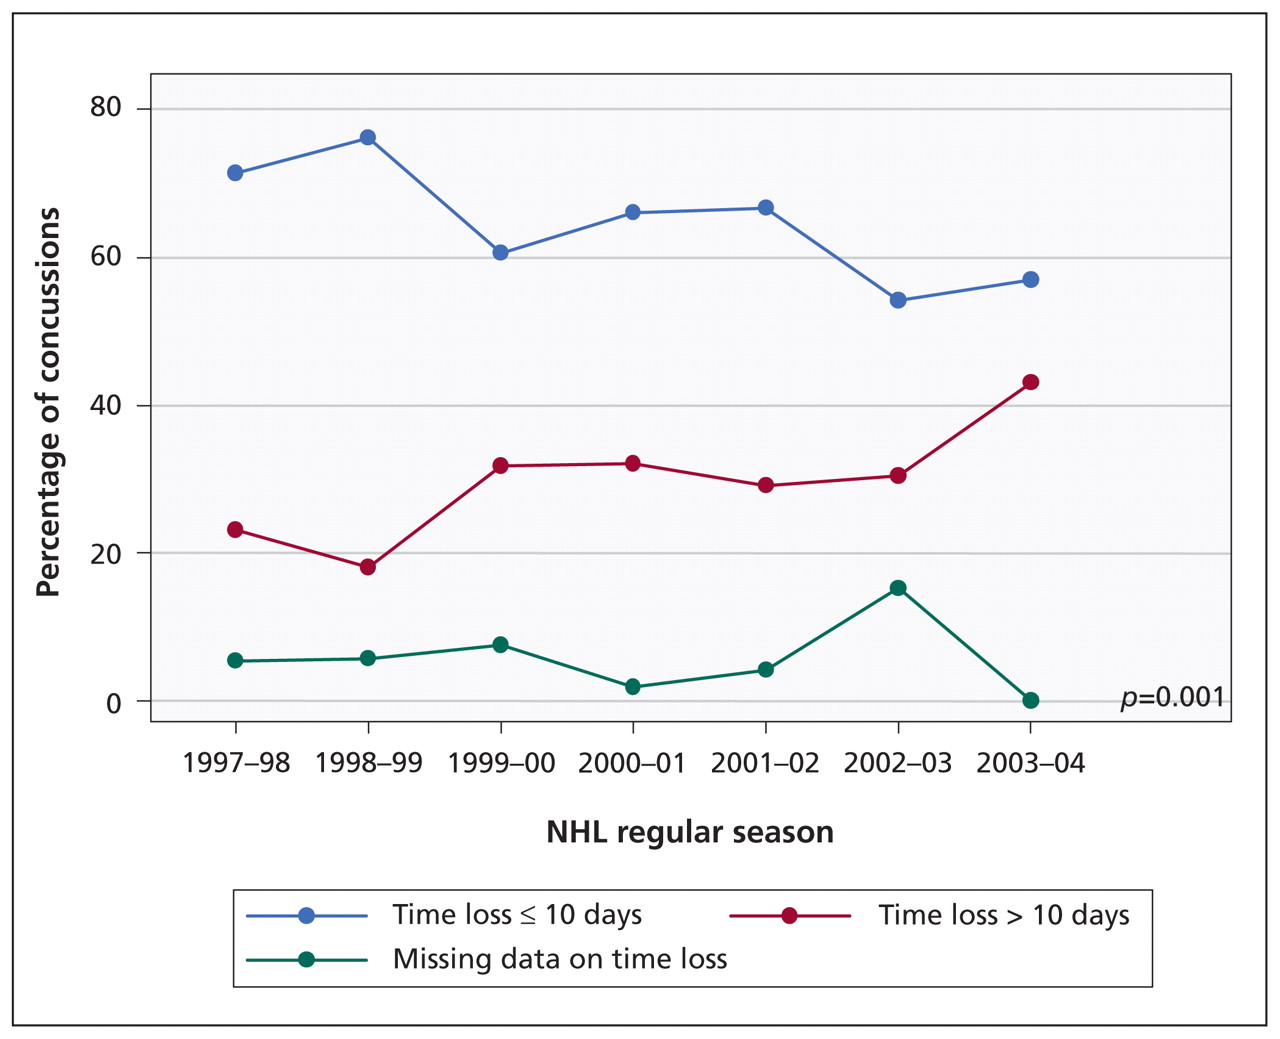 A prospective study of concussions among National Hockey League